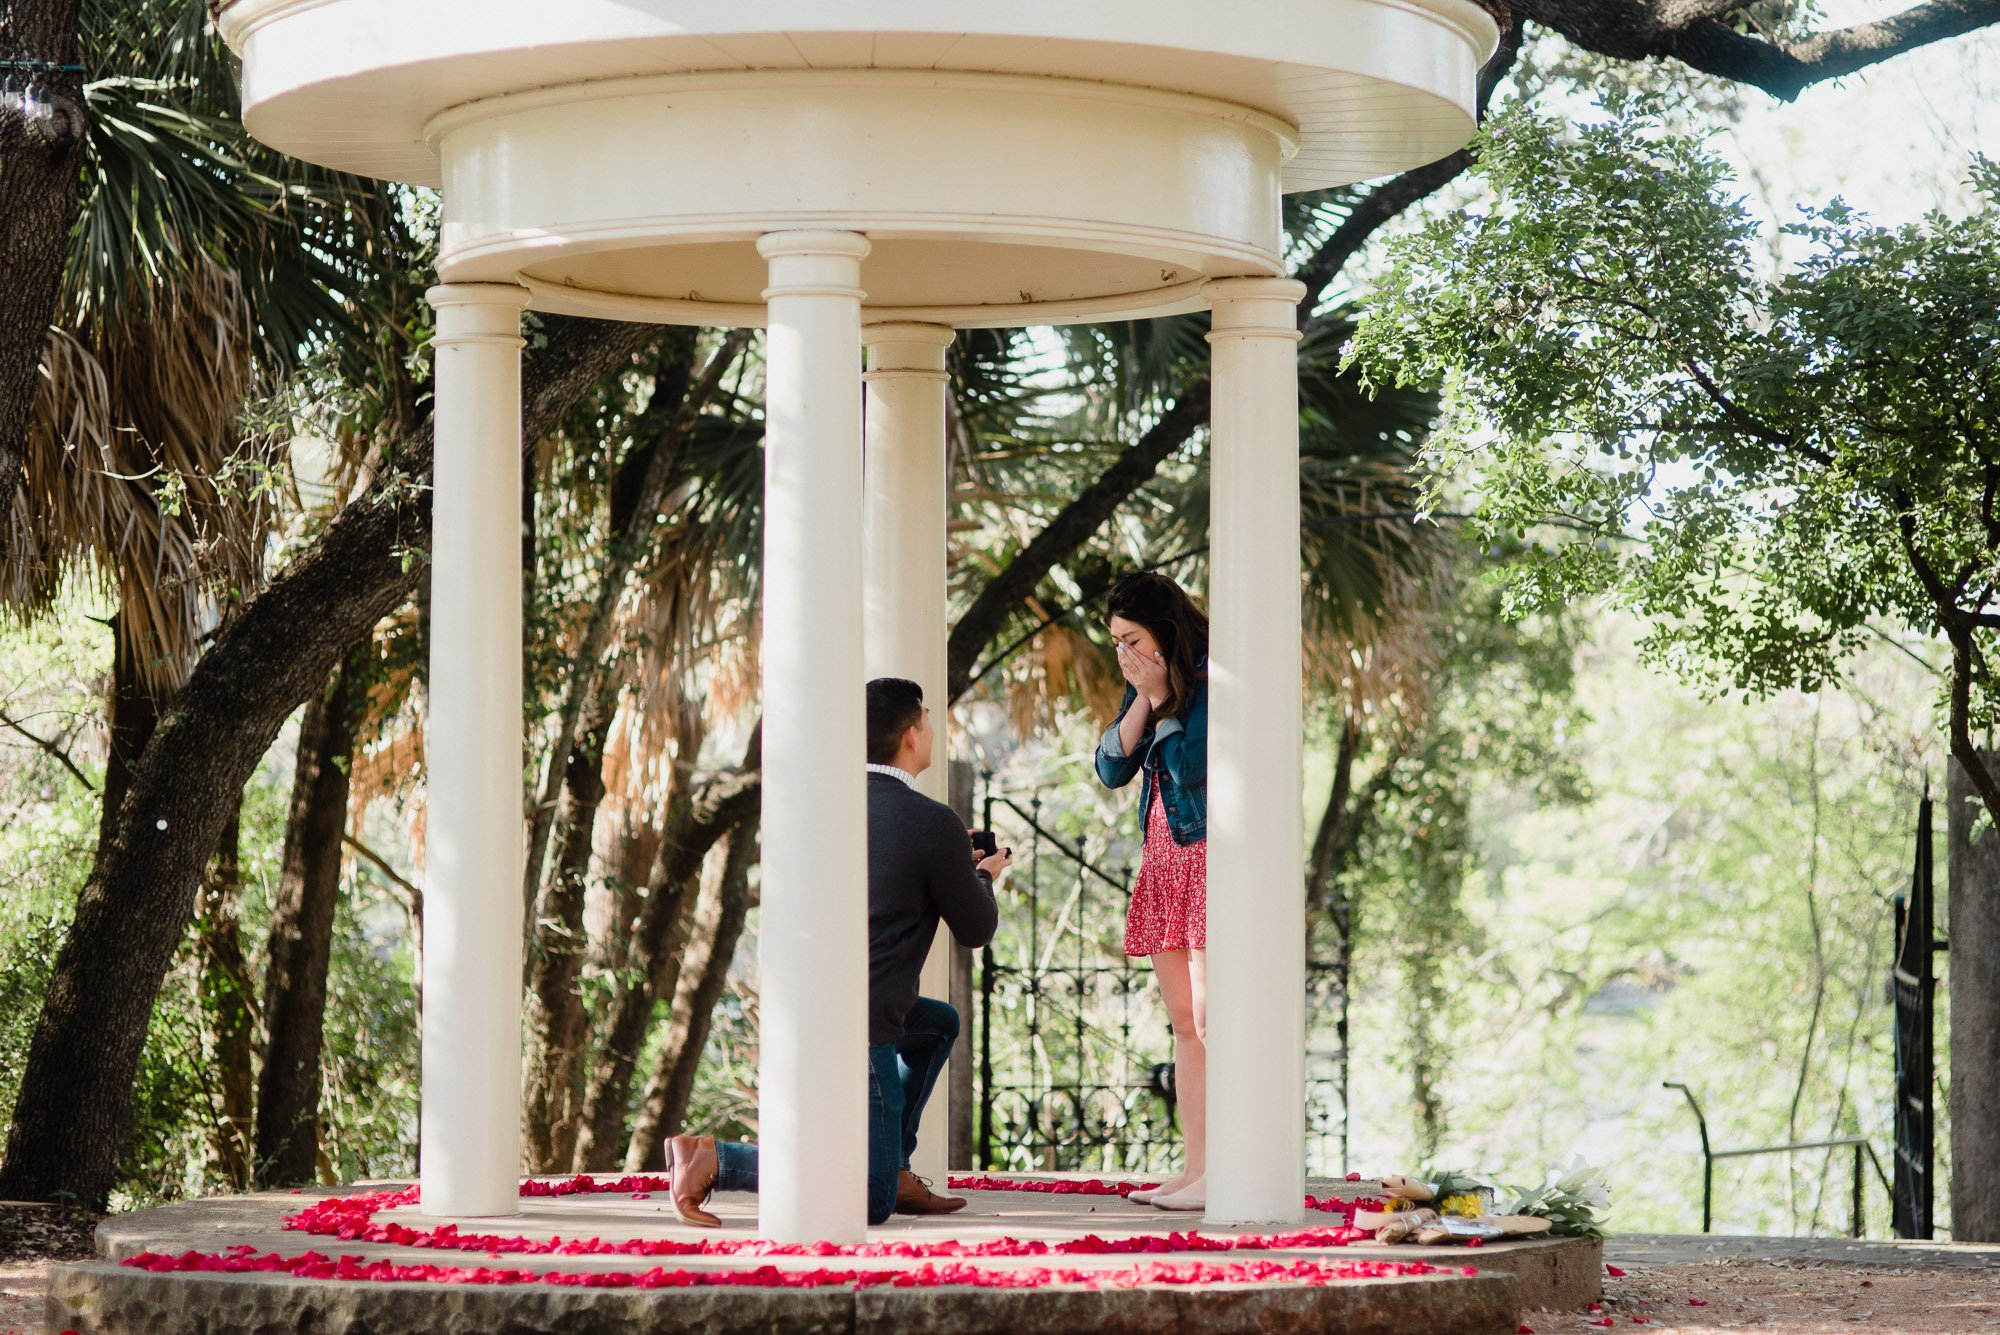 Where to propose in austin texas, scenic and romantic proposal photos, professional proposal photographer in austin texas, early morning wedding proposal photos, laguna gloria proposal